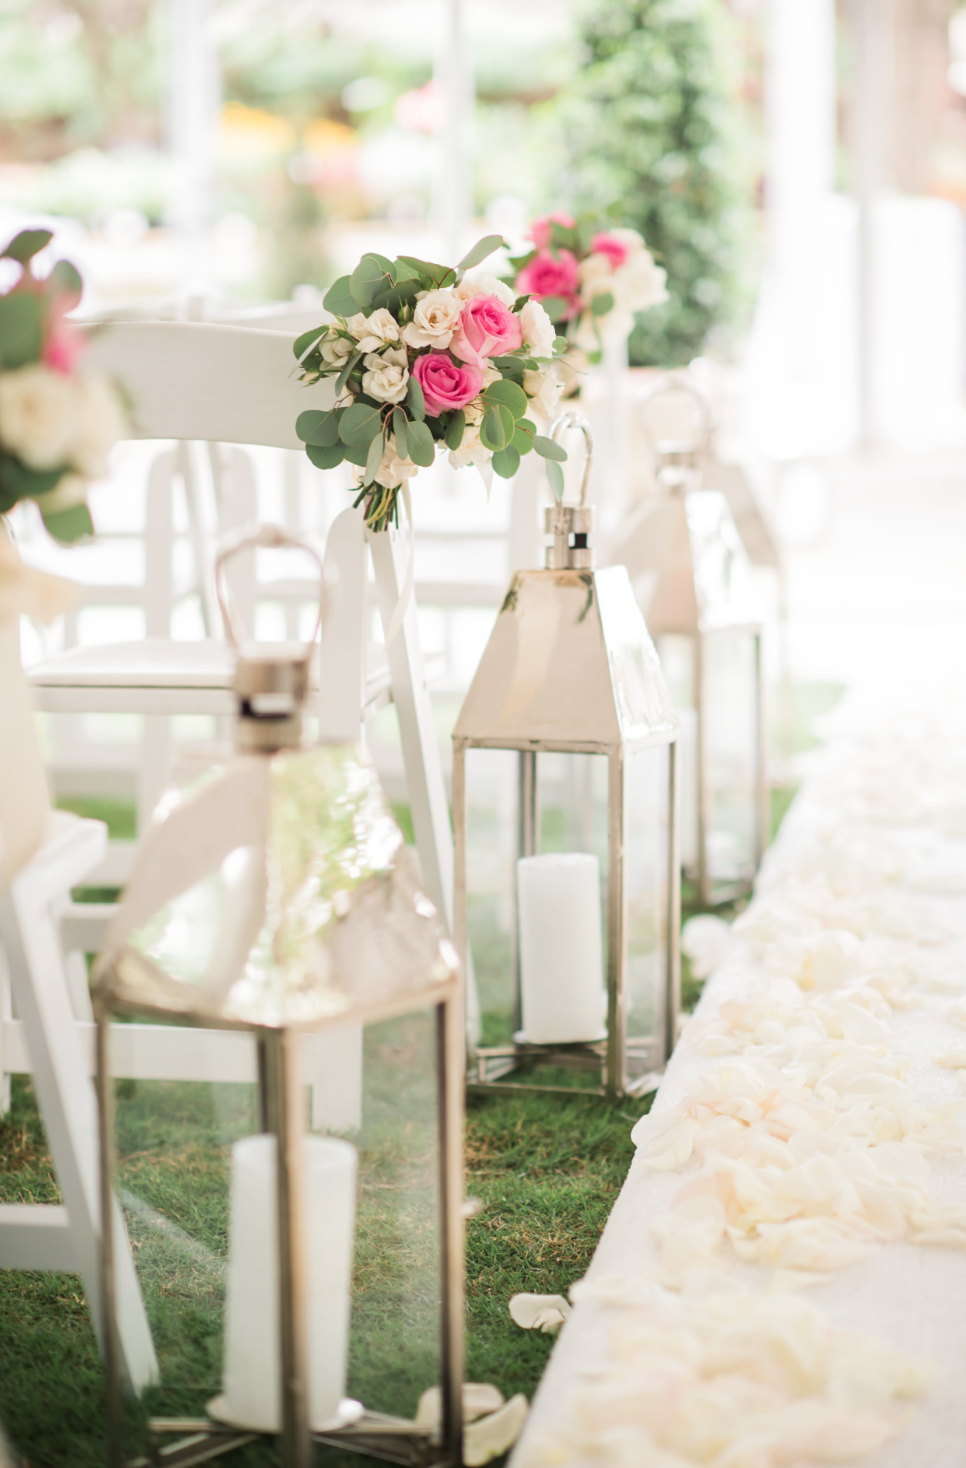 Silver lanterns lined the aisle at C+G's ceremony. Small arrangements hung from the chairs.